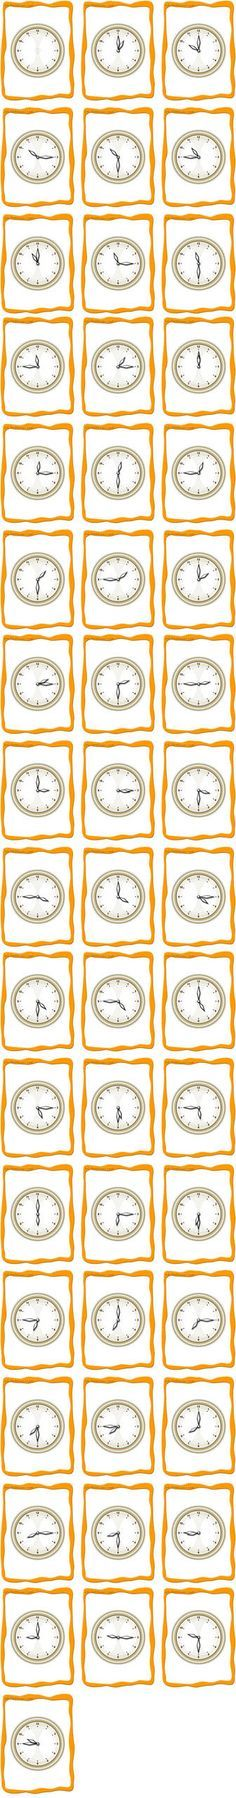 A printable set of time flashcards for teaching time. Pictures of an analog clock for every 15 minutes One empty clock included. Teaching Time, Teaching French, Teaching Spanish, Teaching Math, Teaching English, Teaching Resources, Spanish Teacher, Spanish Classroom, Math Classroom